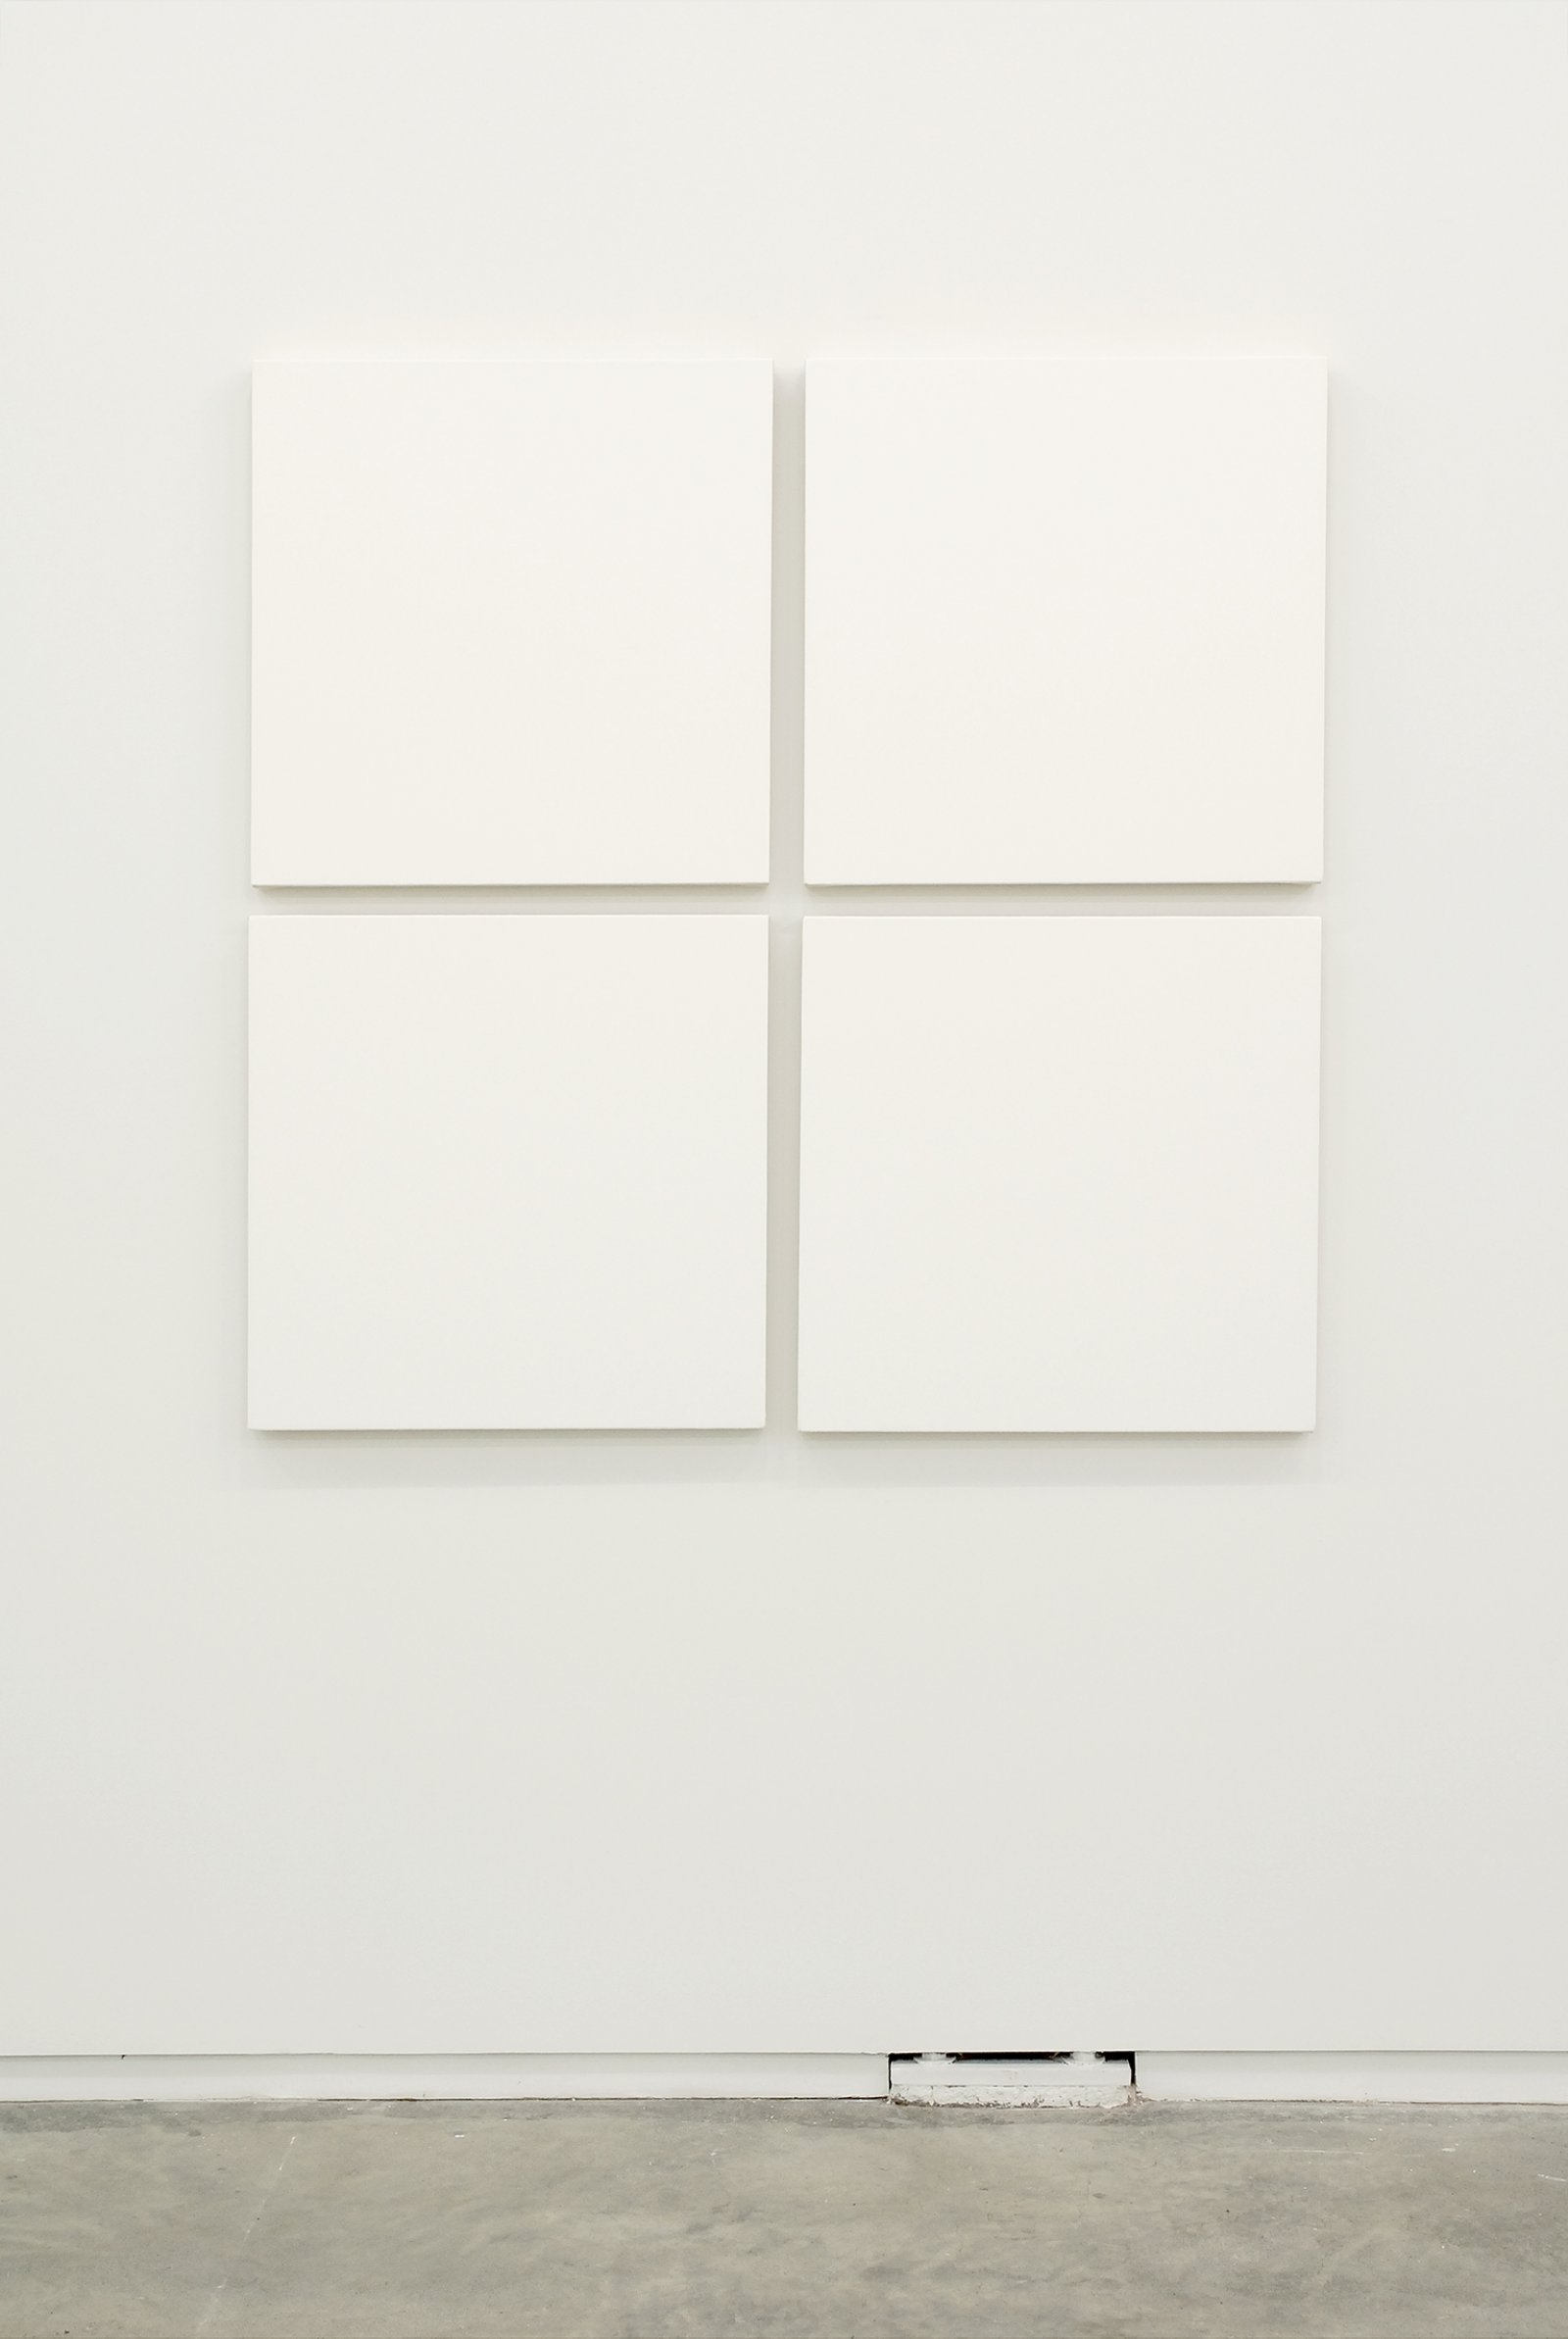 ​Arabella Campbell, Four Squares, 2007, acrylic on canvas, 49 x 49 in. (125 x 125 cm) by